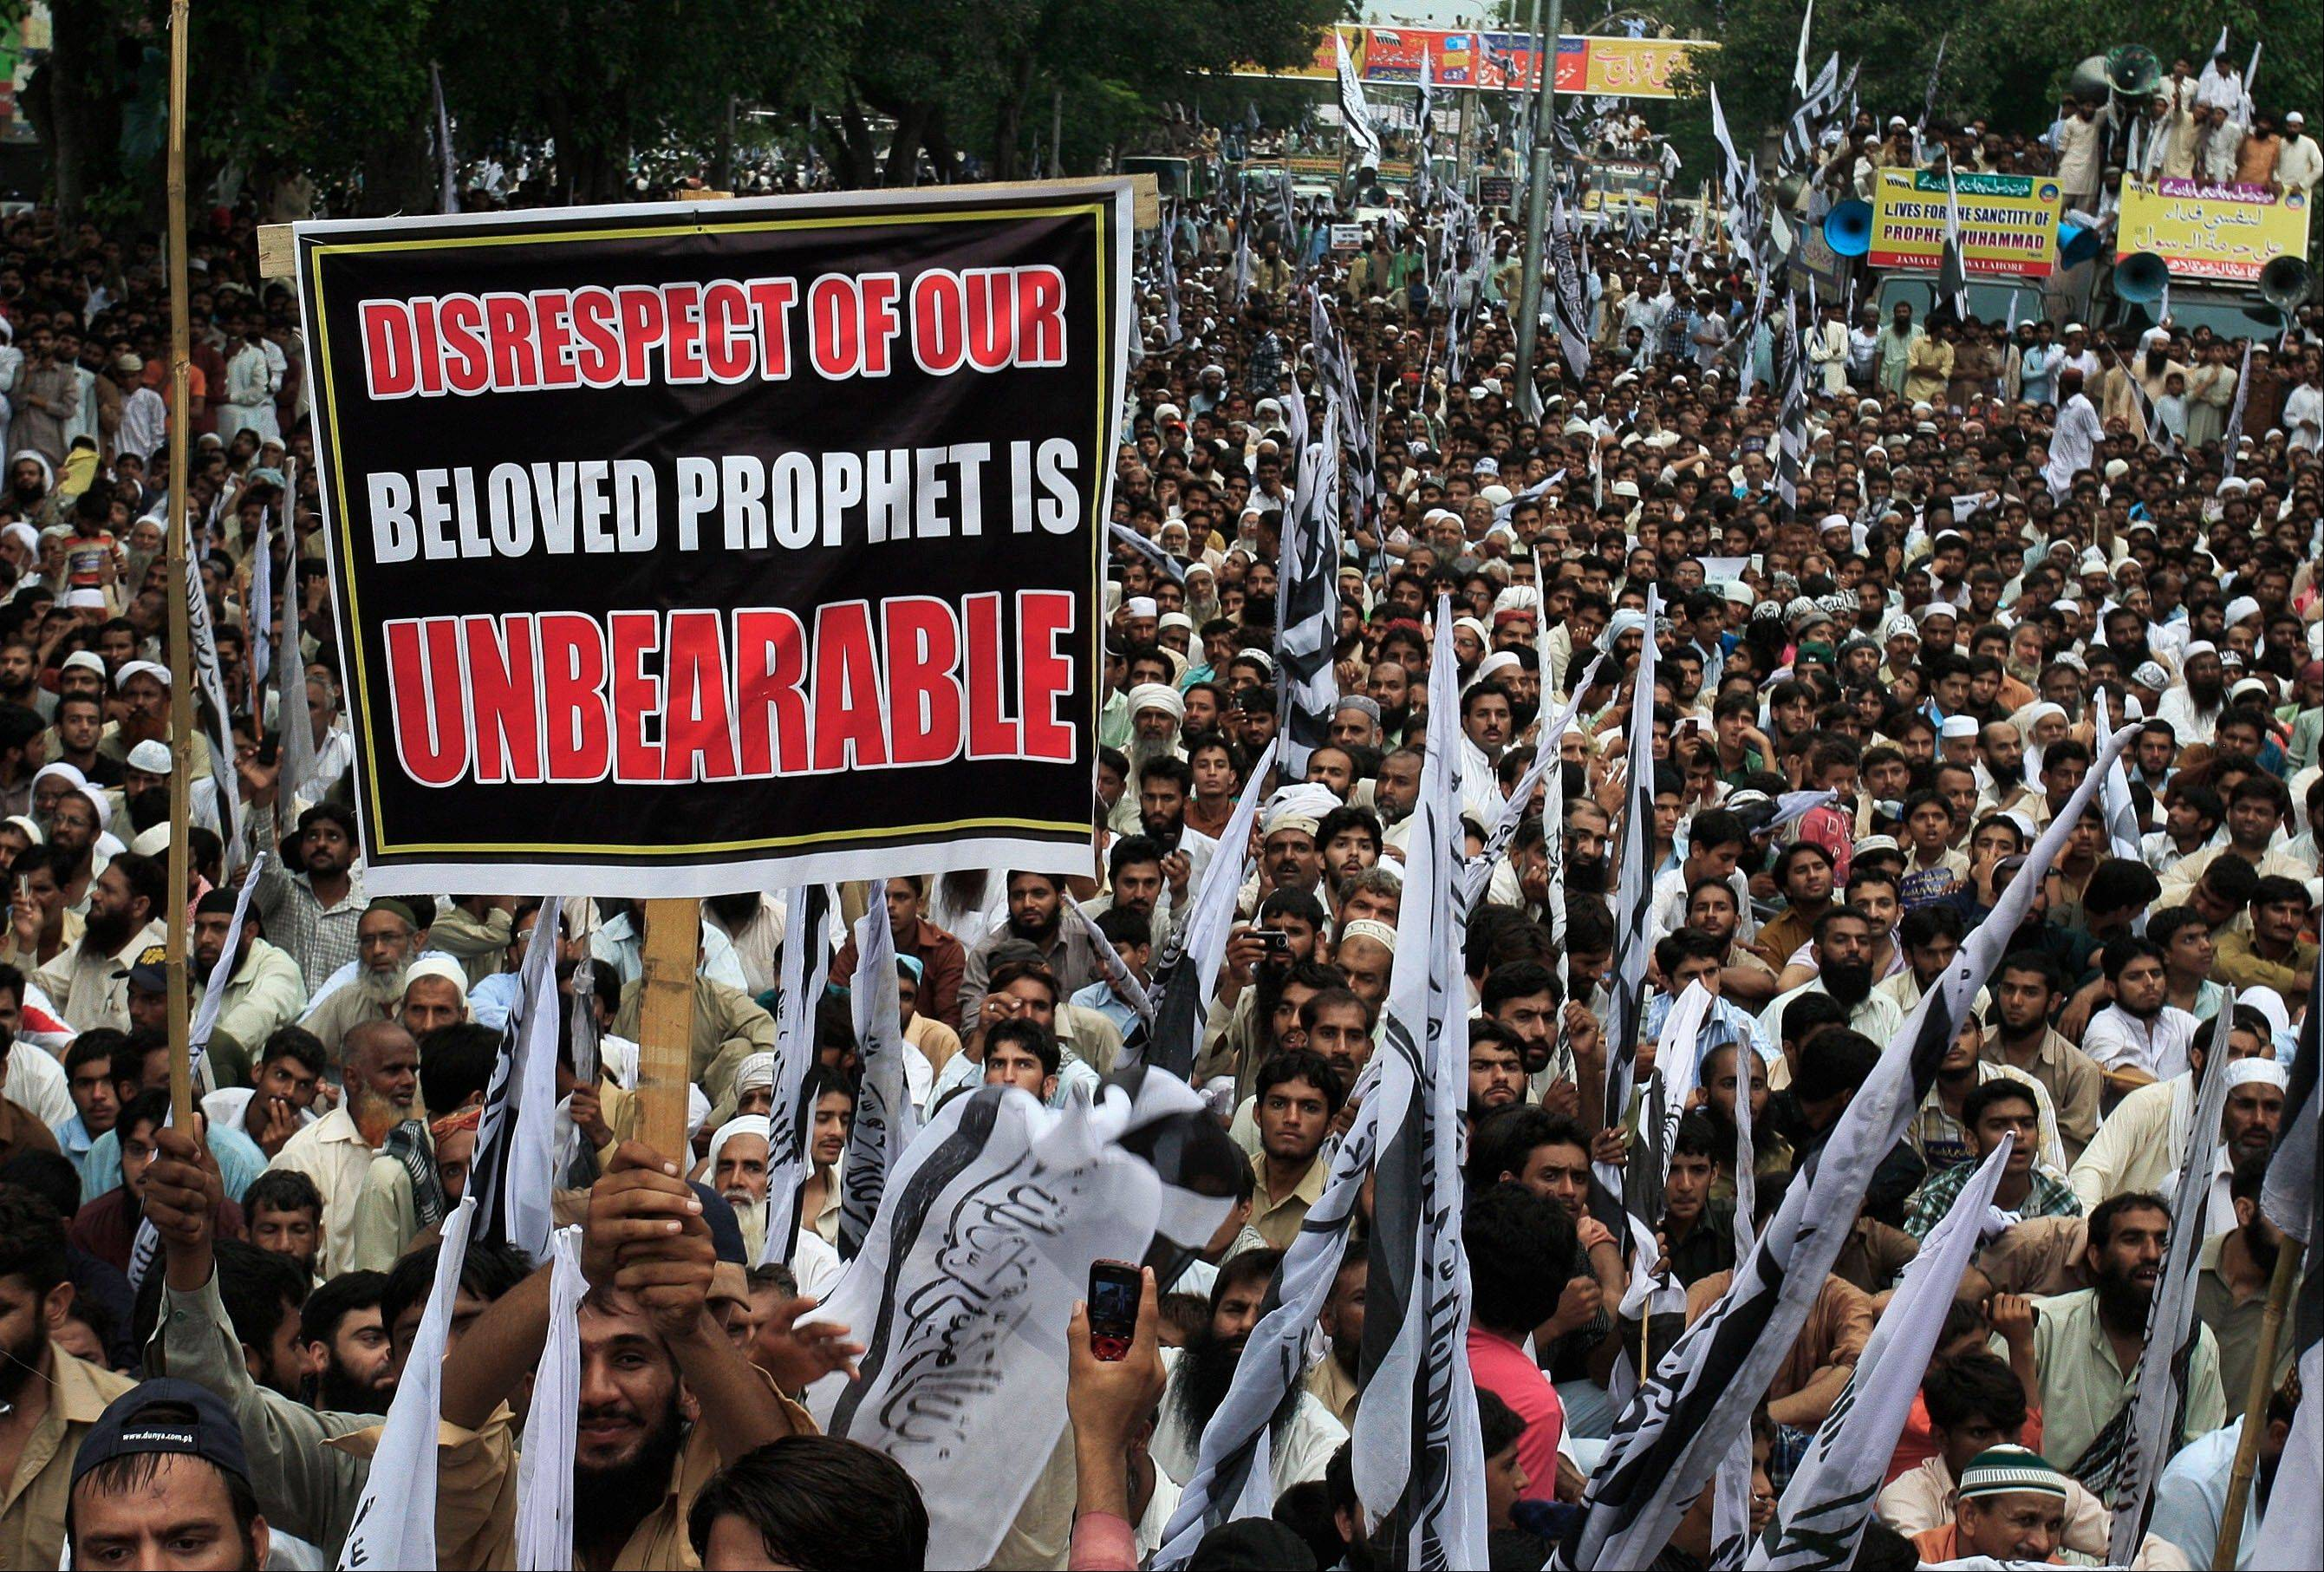 Thousands of supporters of a Pakistani religious group Jammat-Ud-Dawa Tehreek-e-Insaf or Movement for Justice take part in a demonstration in Lahore, Pakistan, Sunday, as part of widespread anger across the Muslim world over a film ridiculing Islam�s Prophet Muhammad.